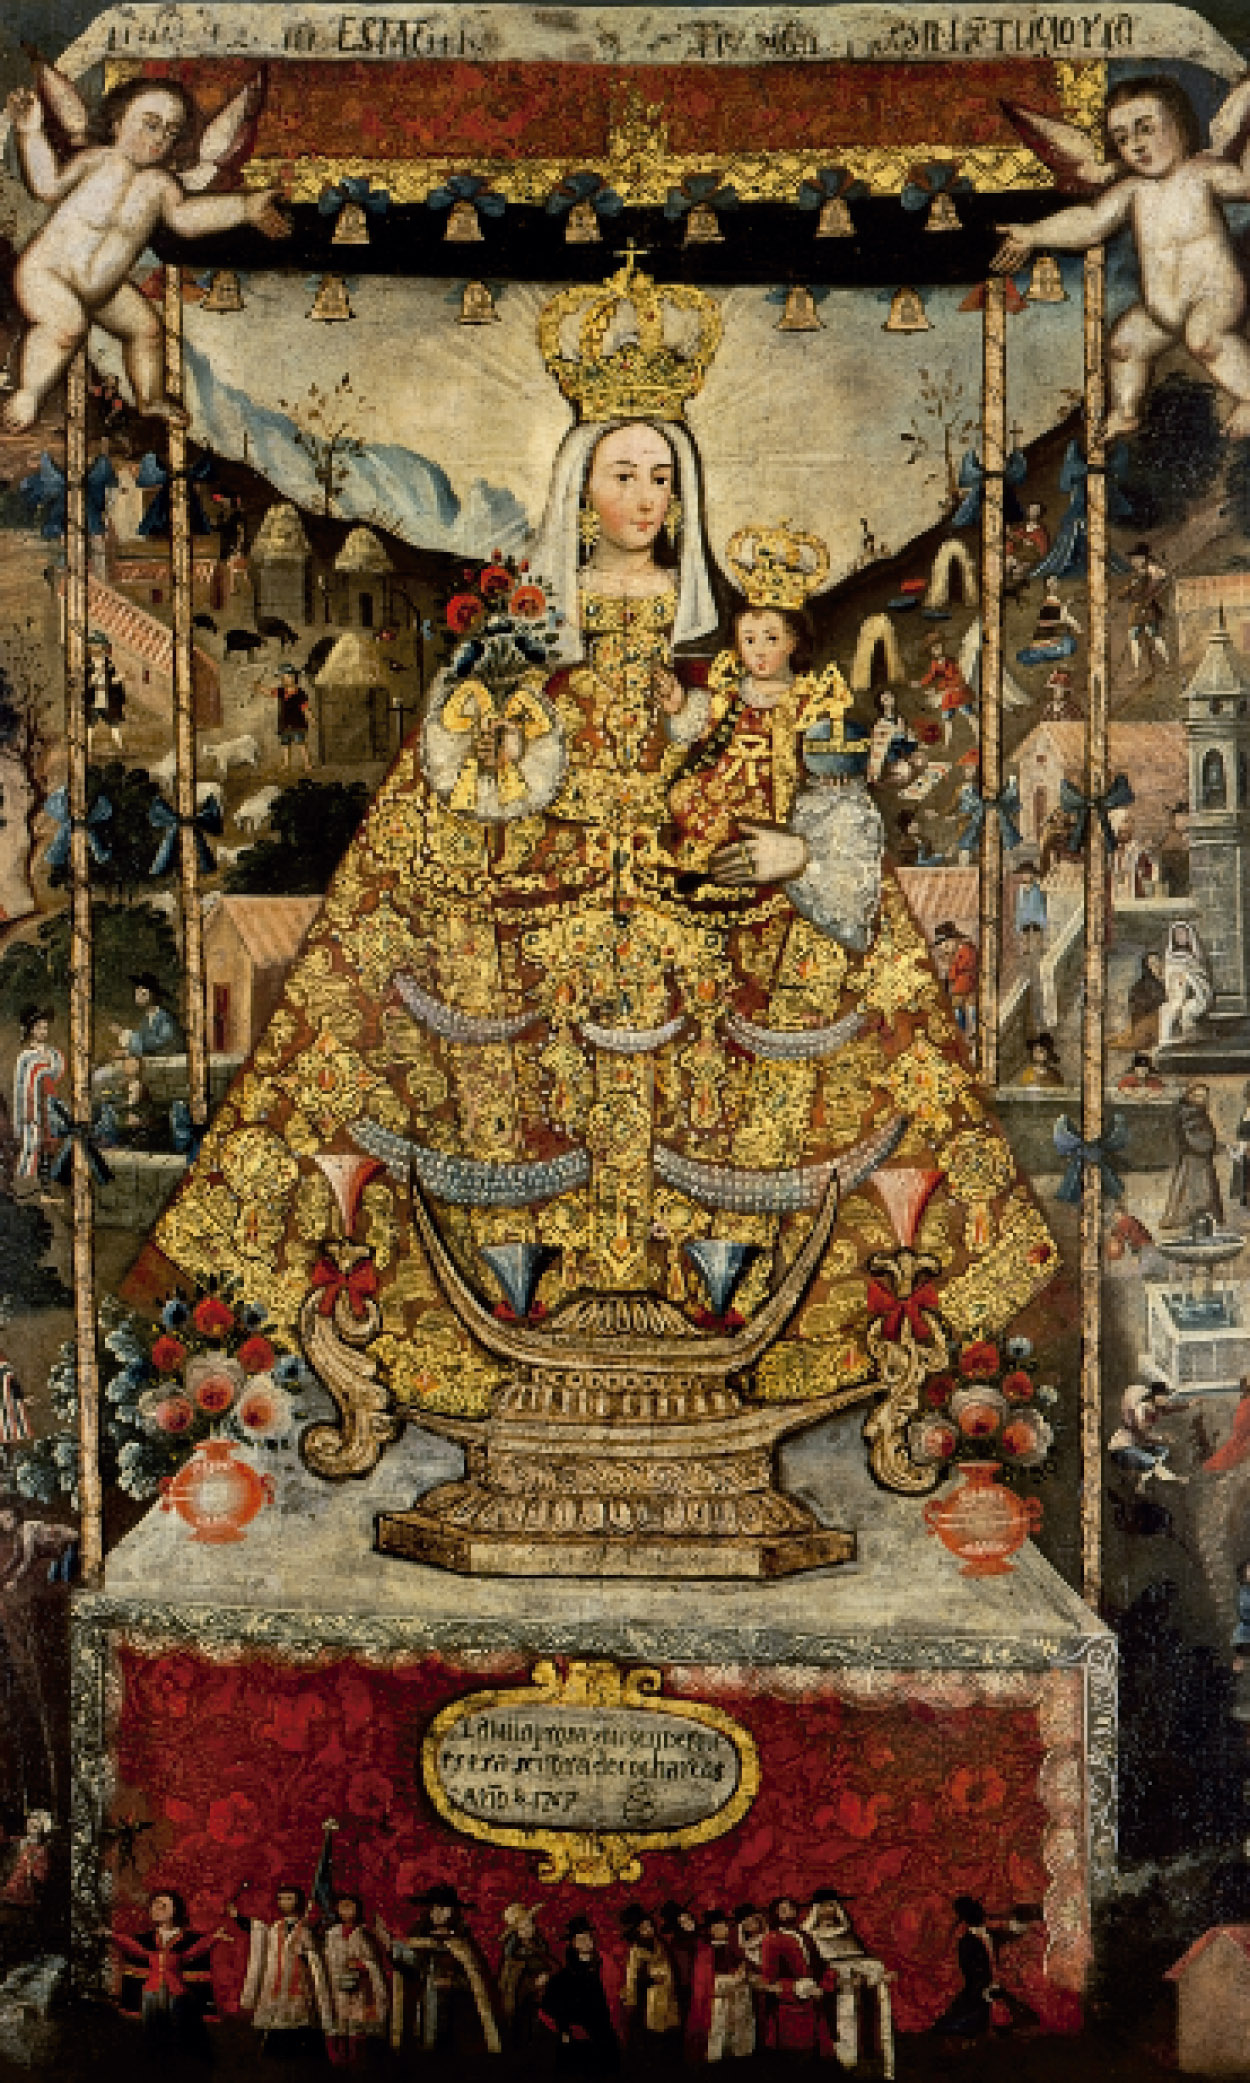 Virgen de Cocharcas (1766)